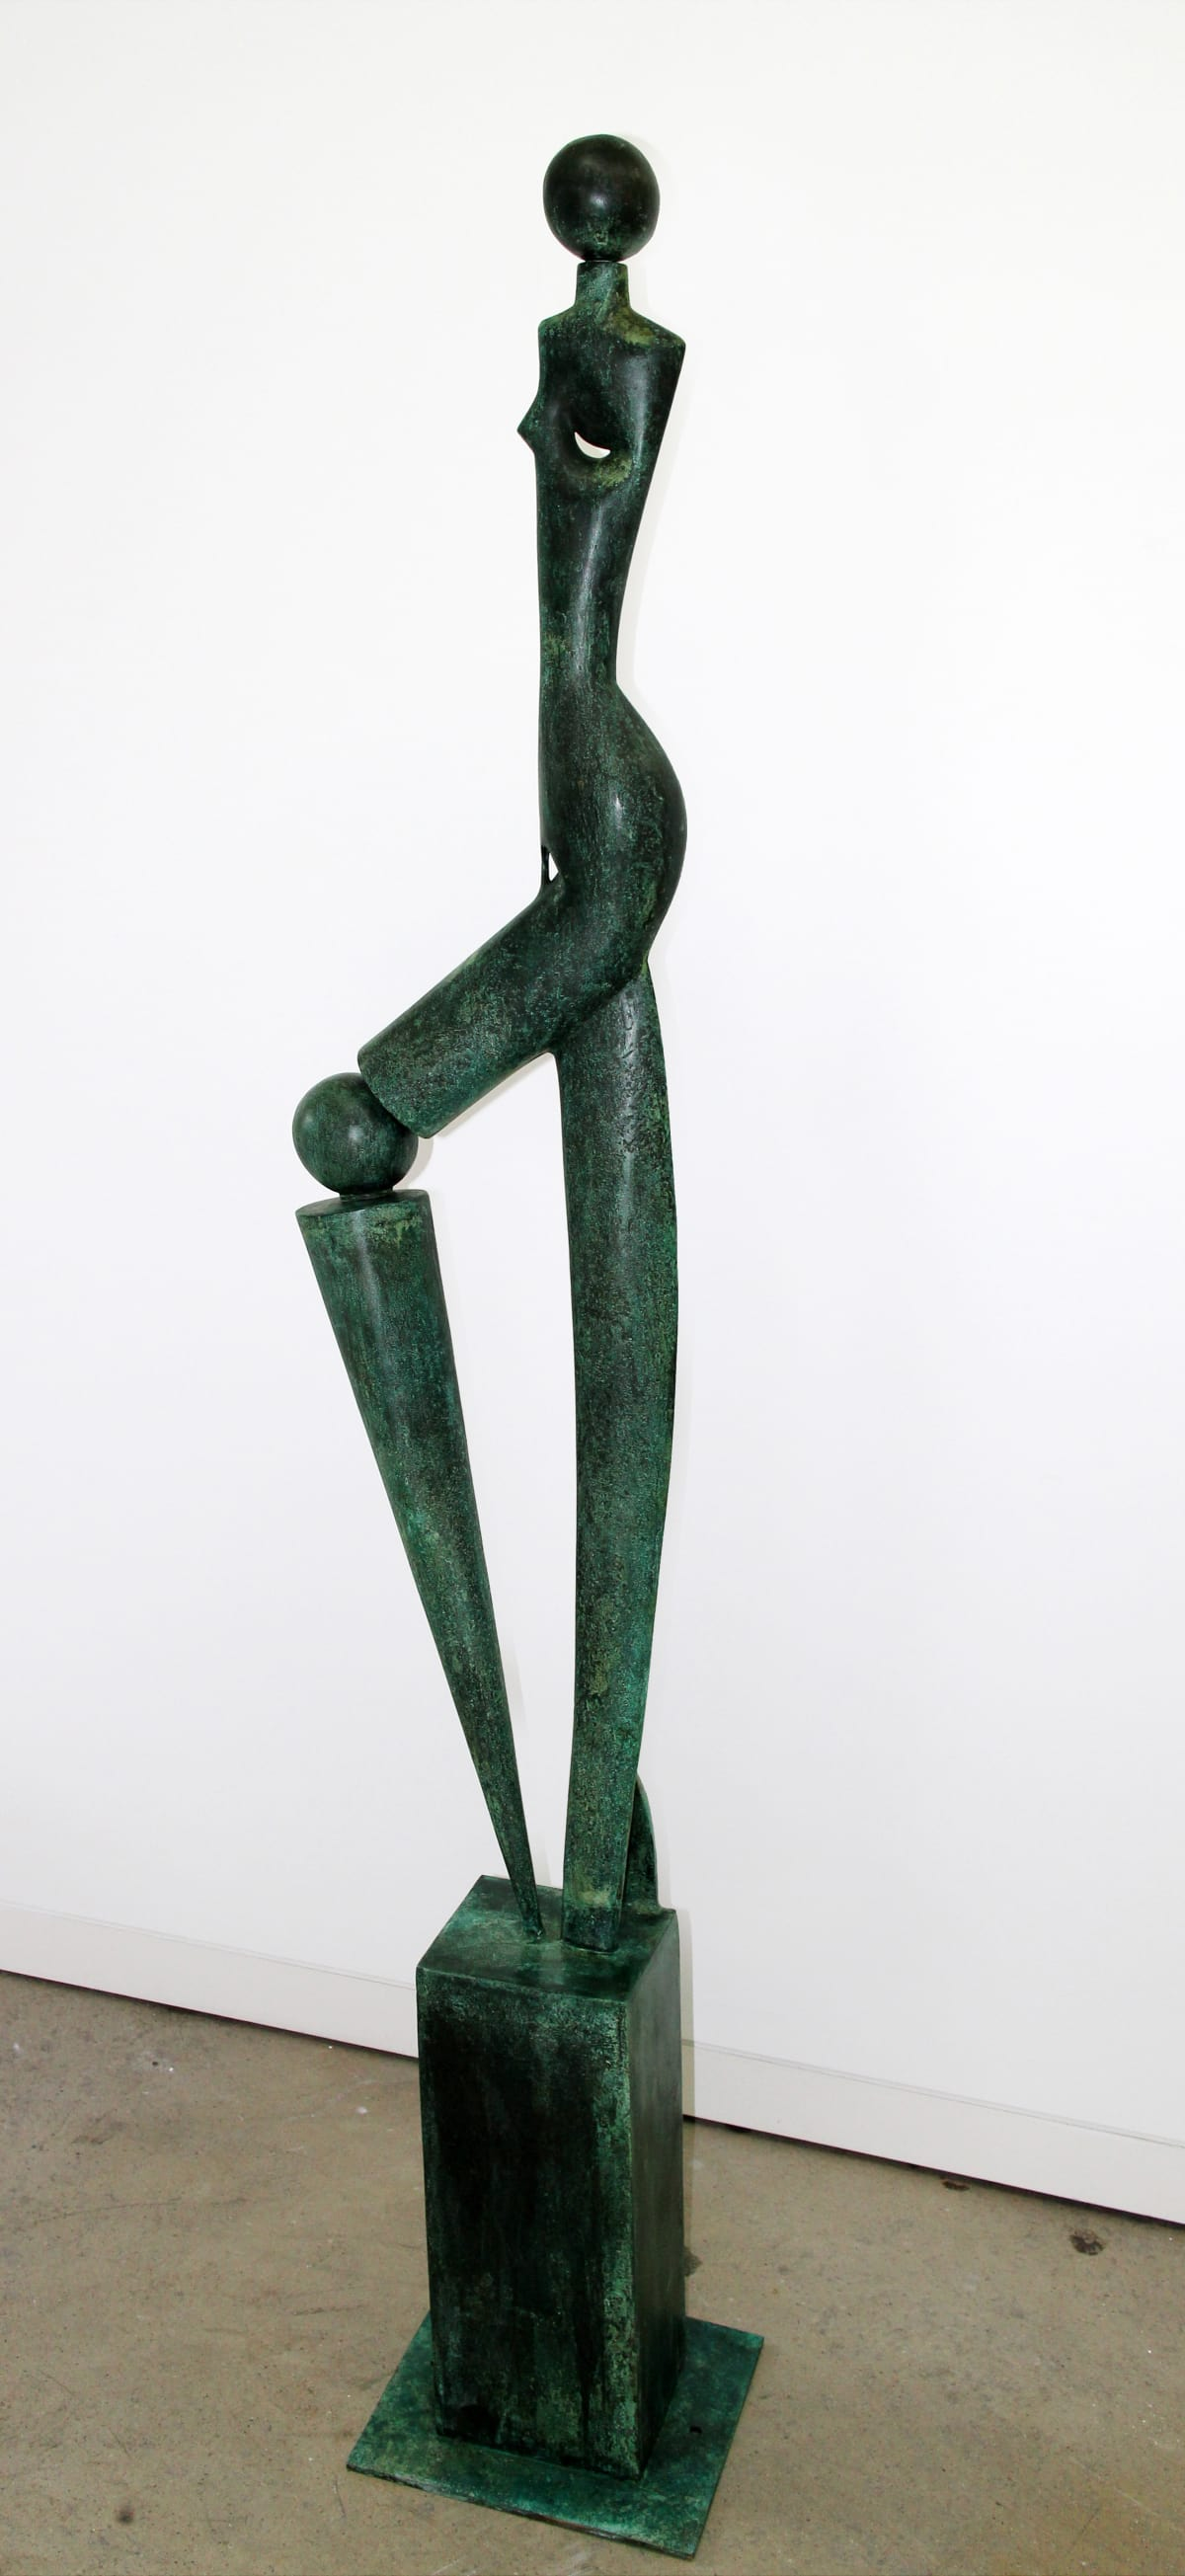 Paul DIBBLE The Girl Stands Tall, 1/2, 2014 Cast Patinated Bronze 79.9 x 13.2 x 13 in 203 x 33.5 x 33 cm